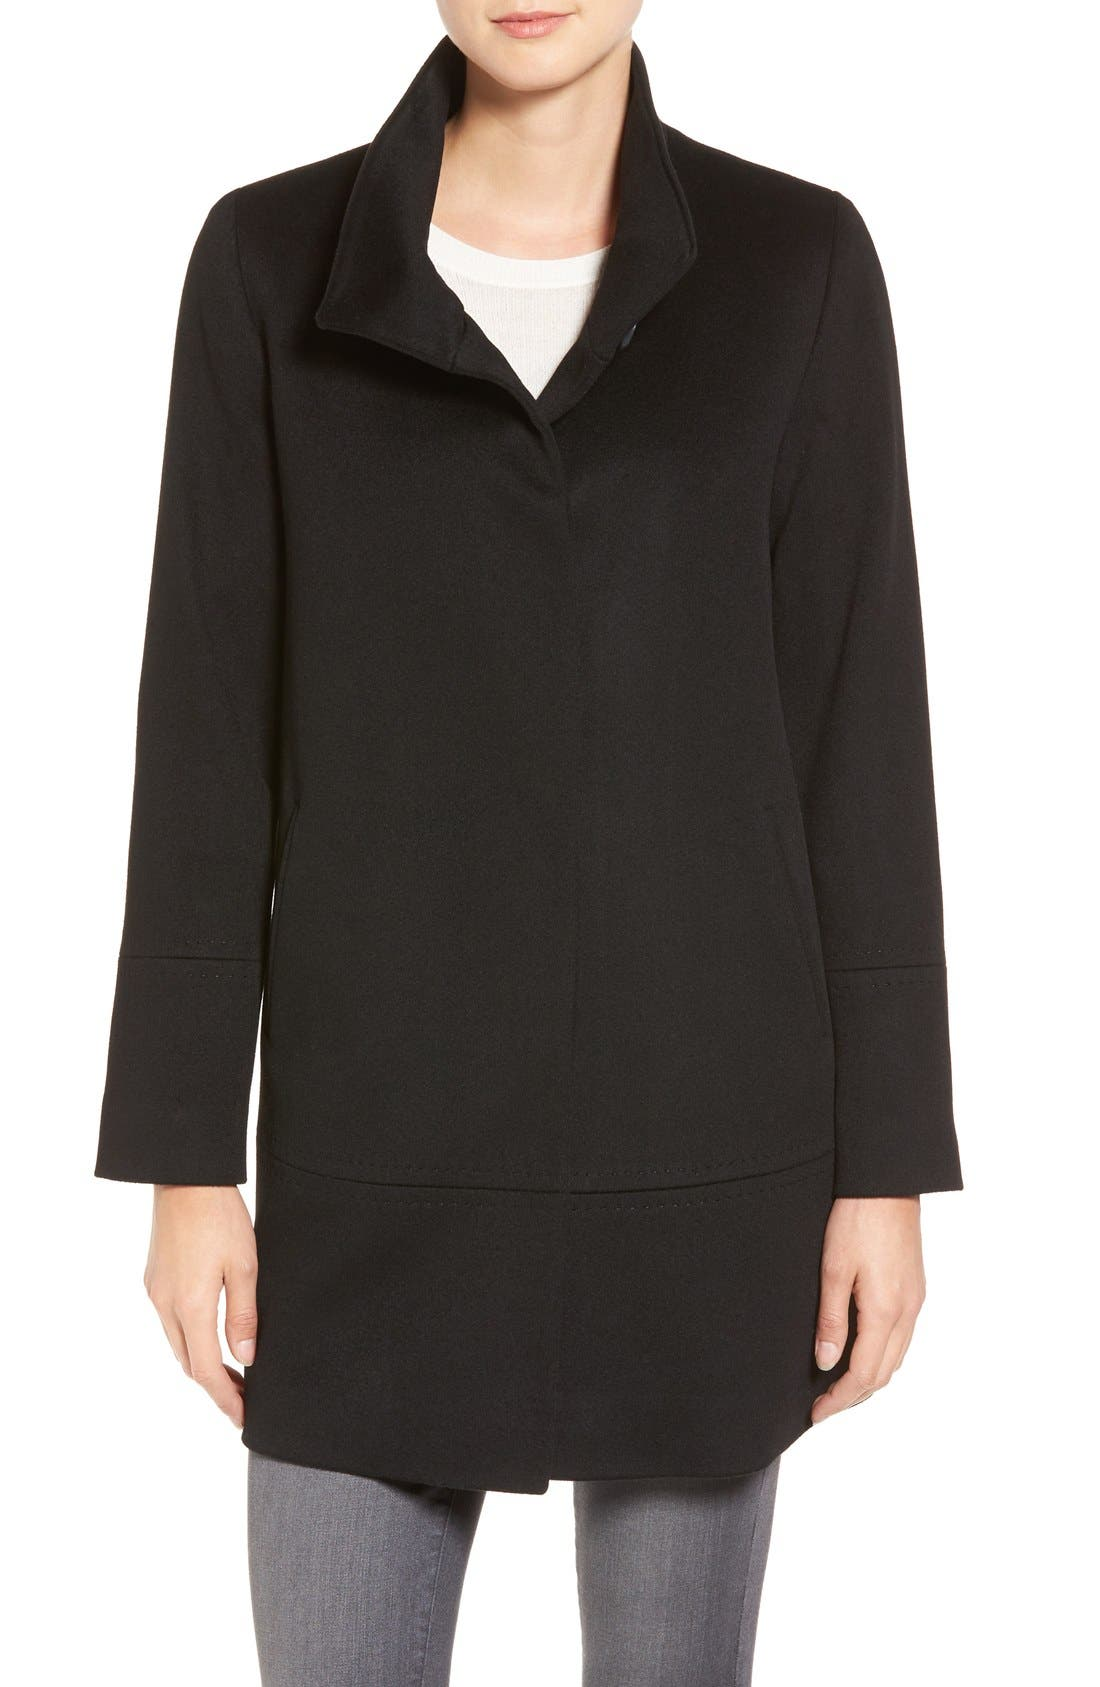 Fleurette Loro Piana Wool Car Coat (Regular & Petite) (Nordstrom Exclusive)